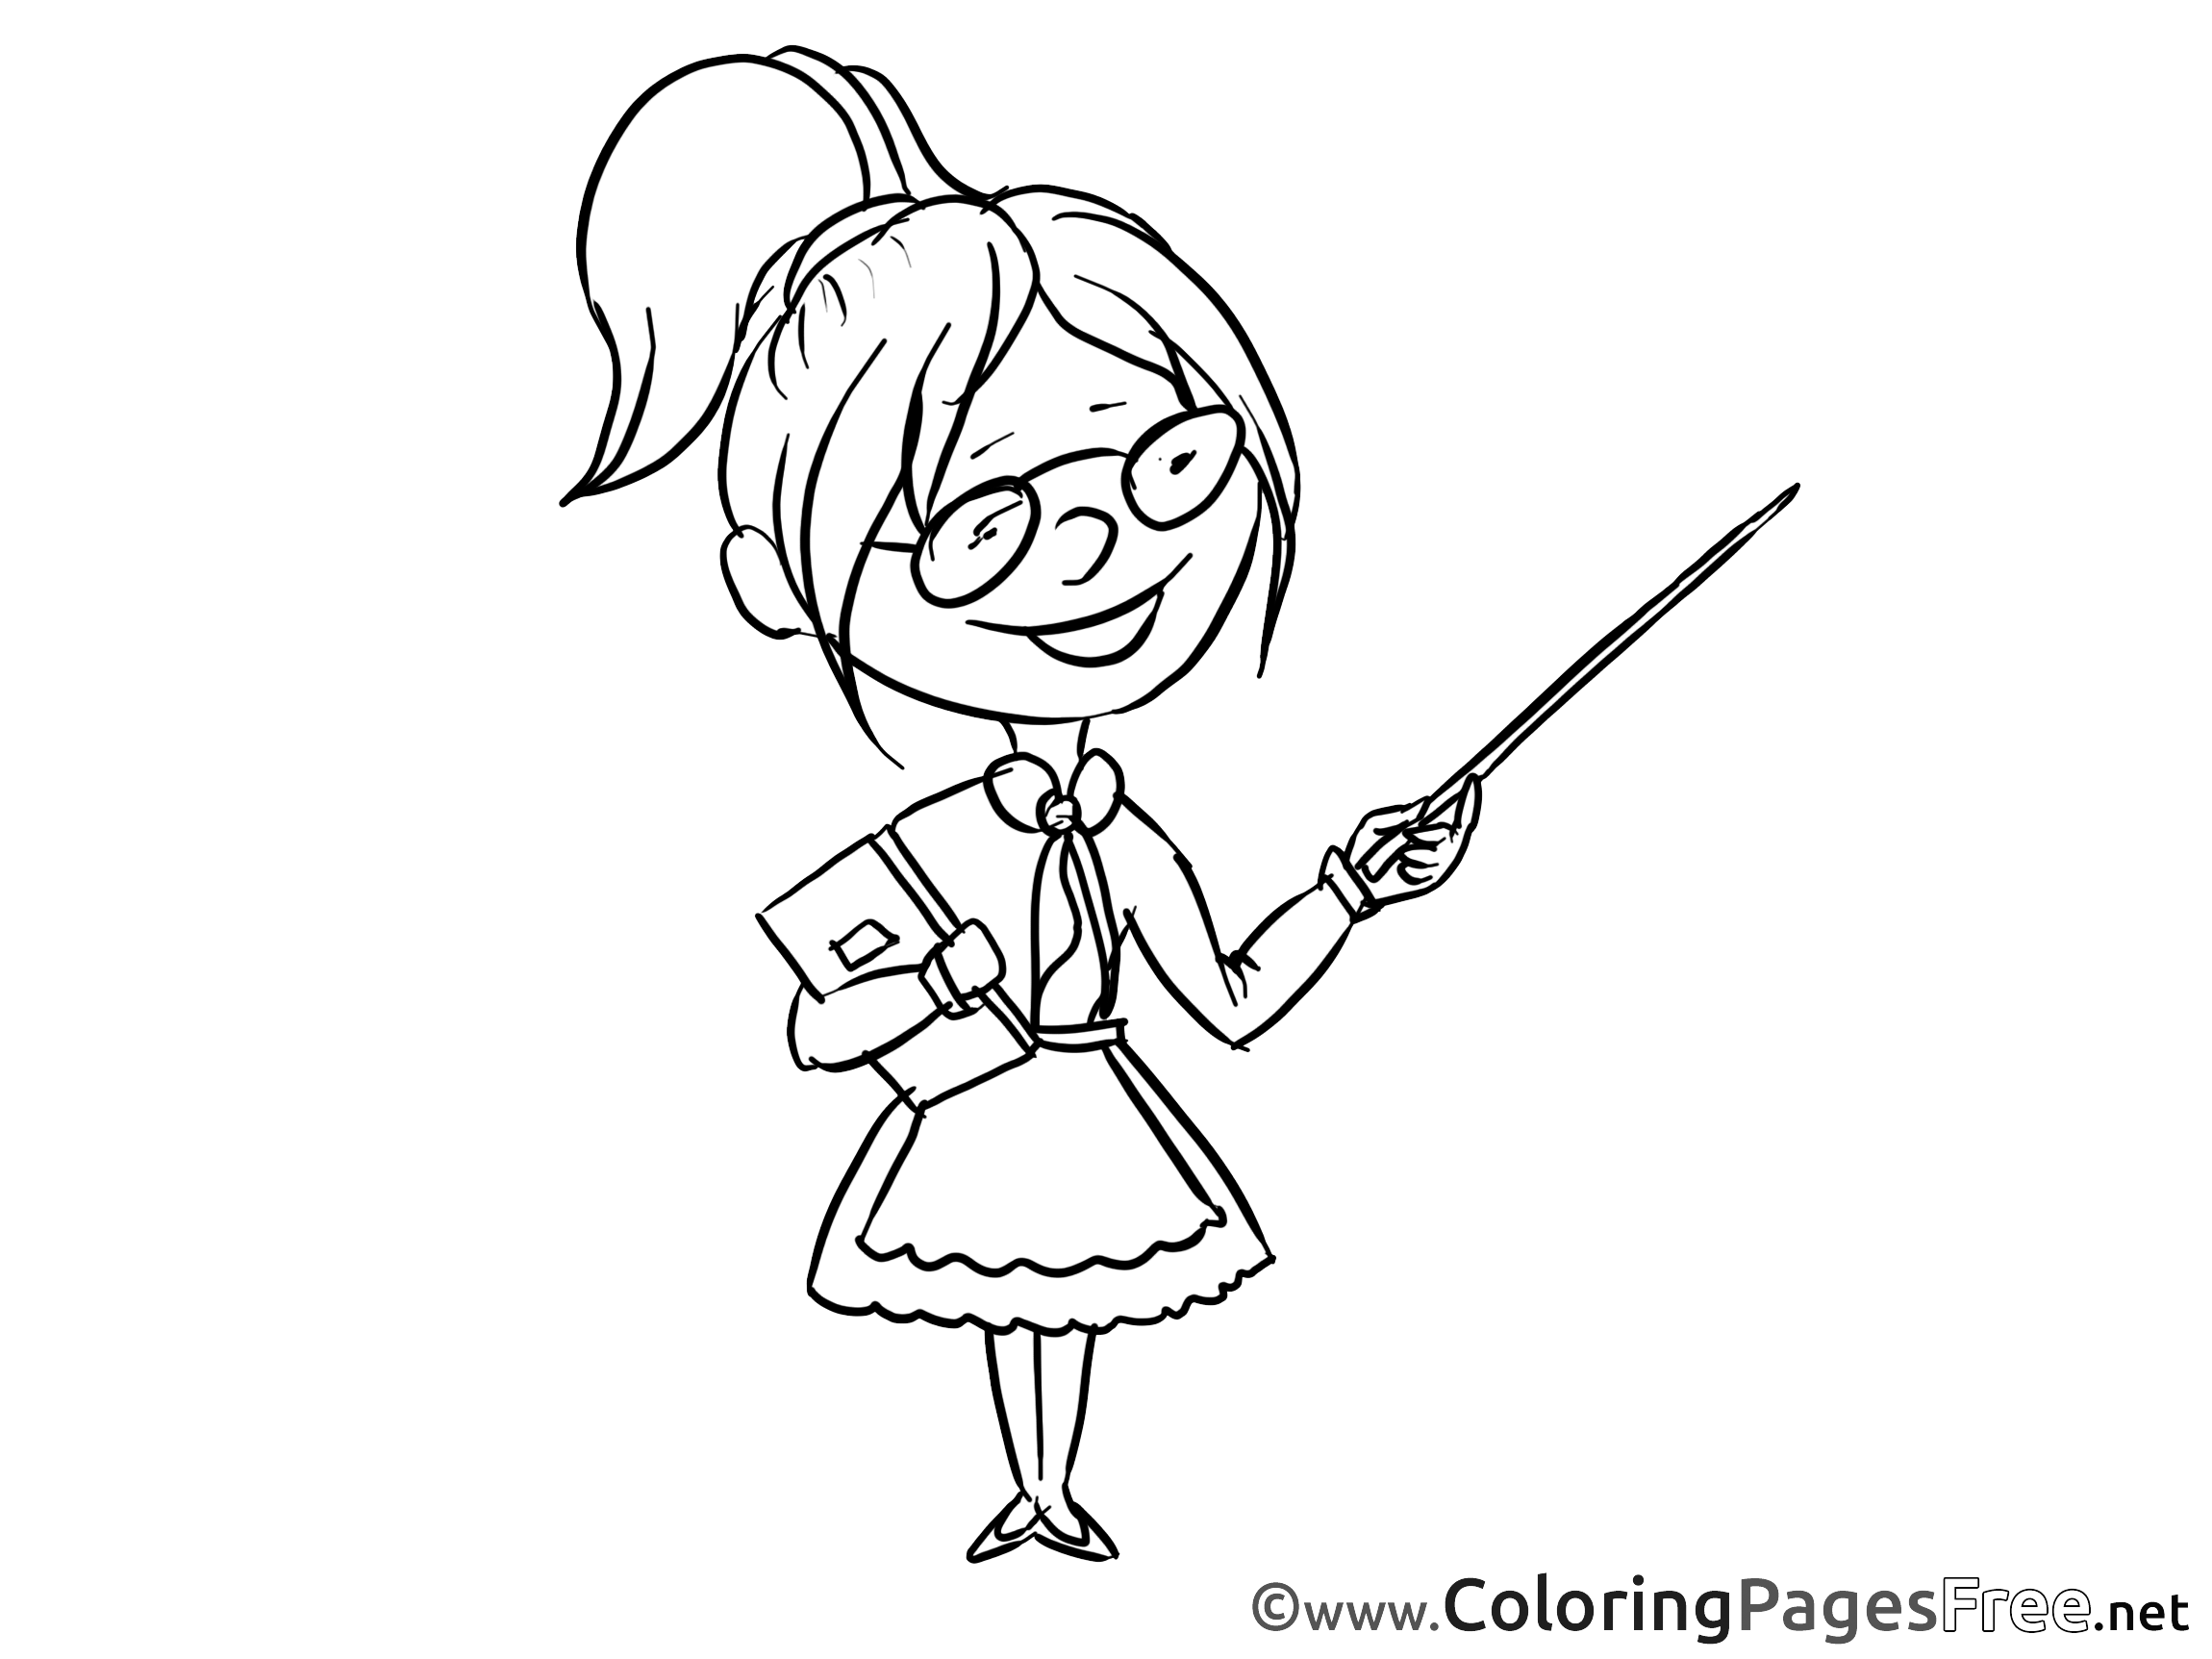 - Teacher Kids Download Coloring Pages